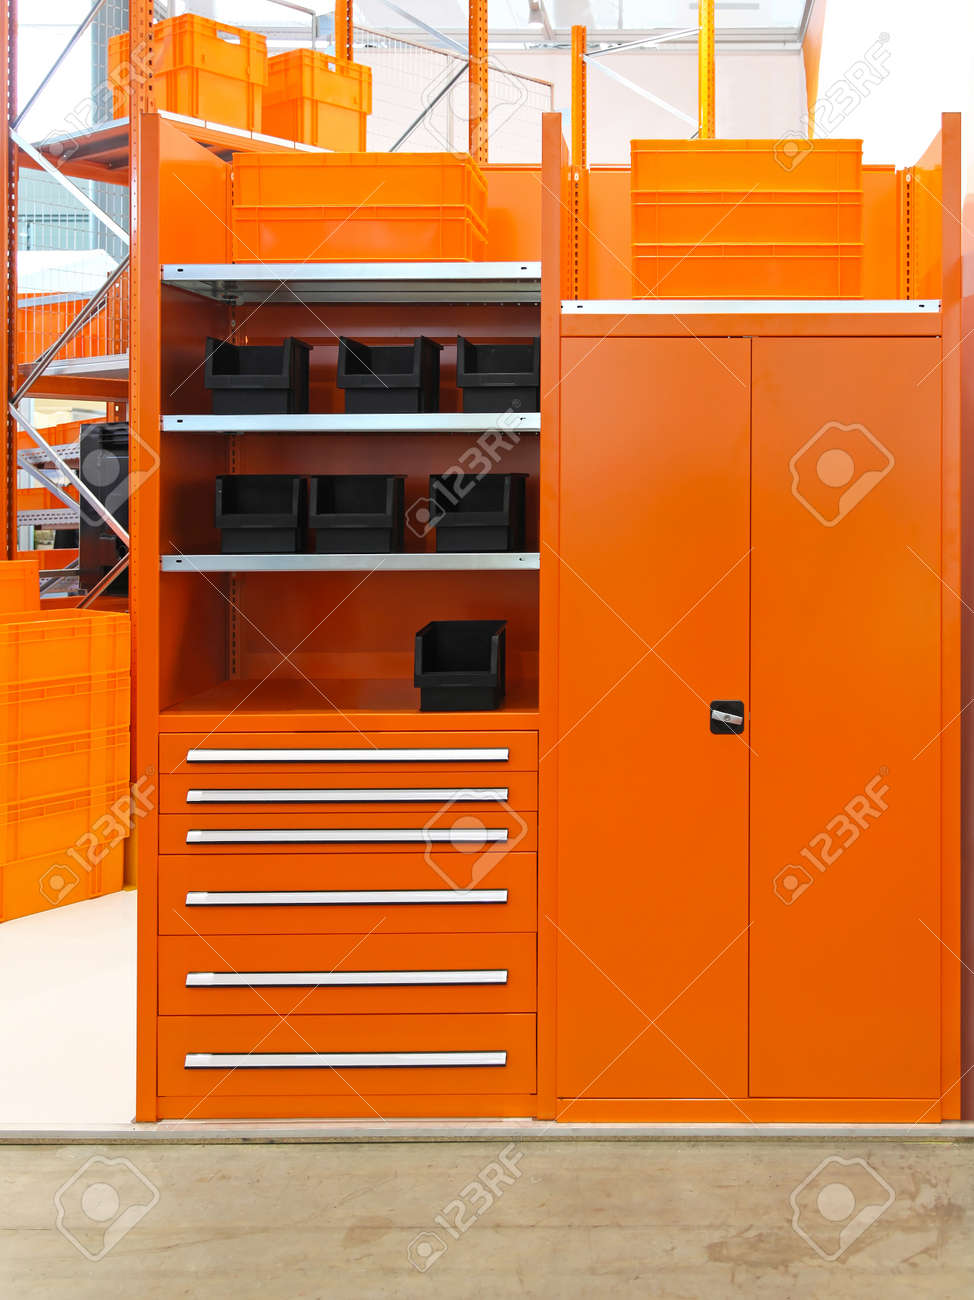 Wondrous Orange Shelves And Locker Storage In Warehouse Home Interior And Landscaping Ologienasavecom